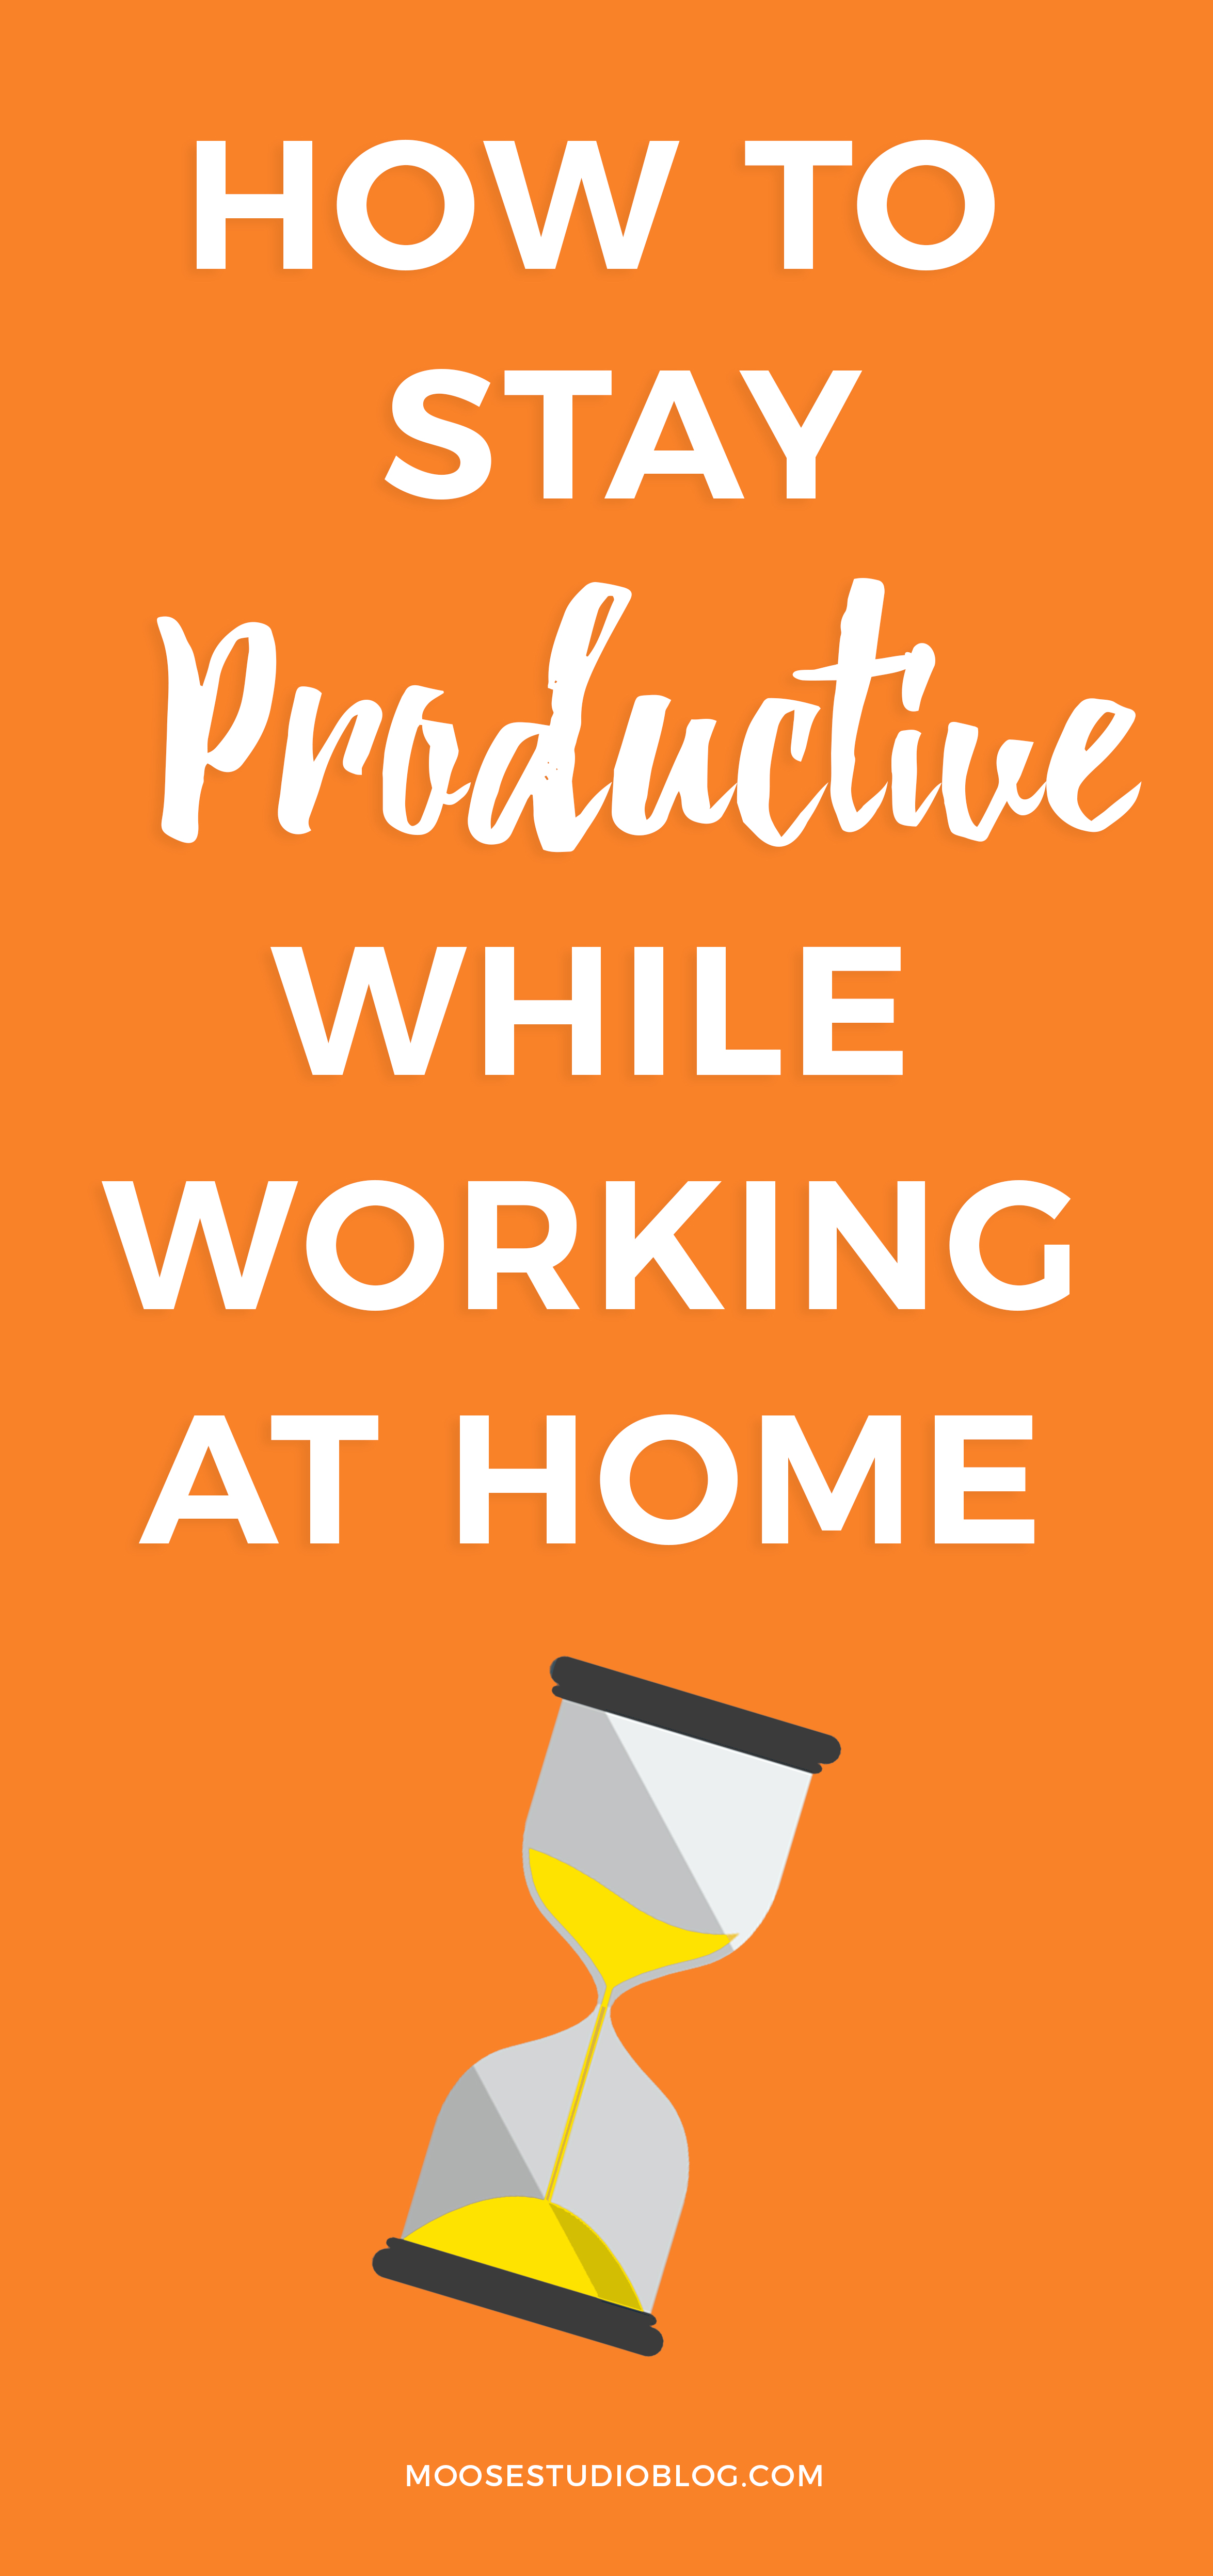 How To Stay Focused And Productive While Working At Home